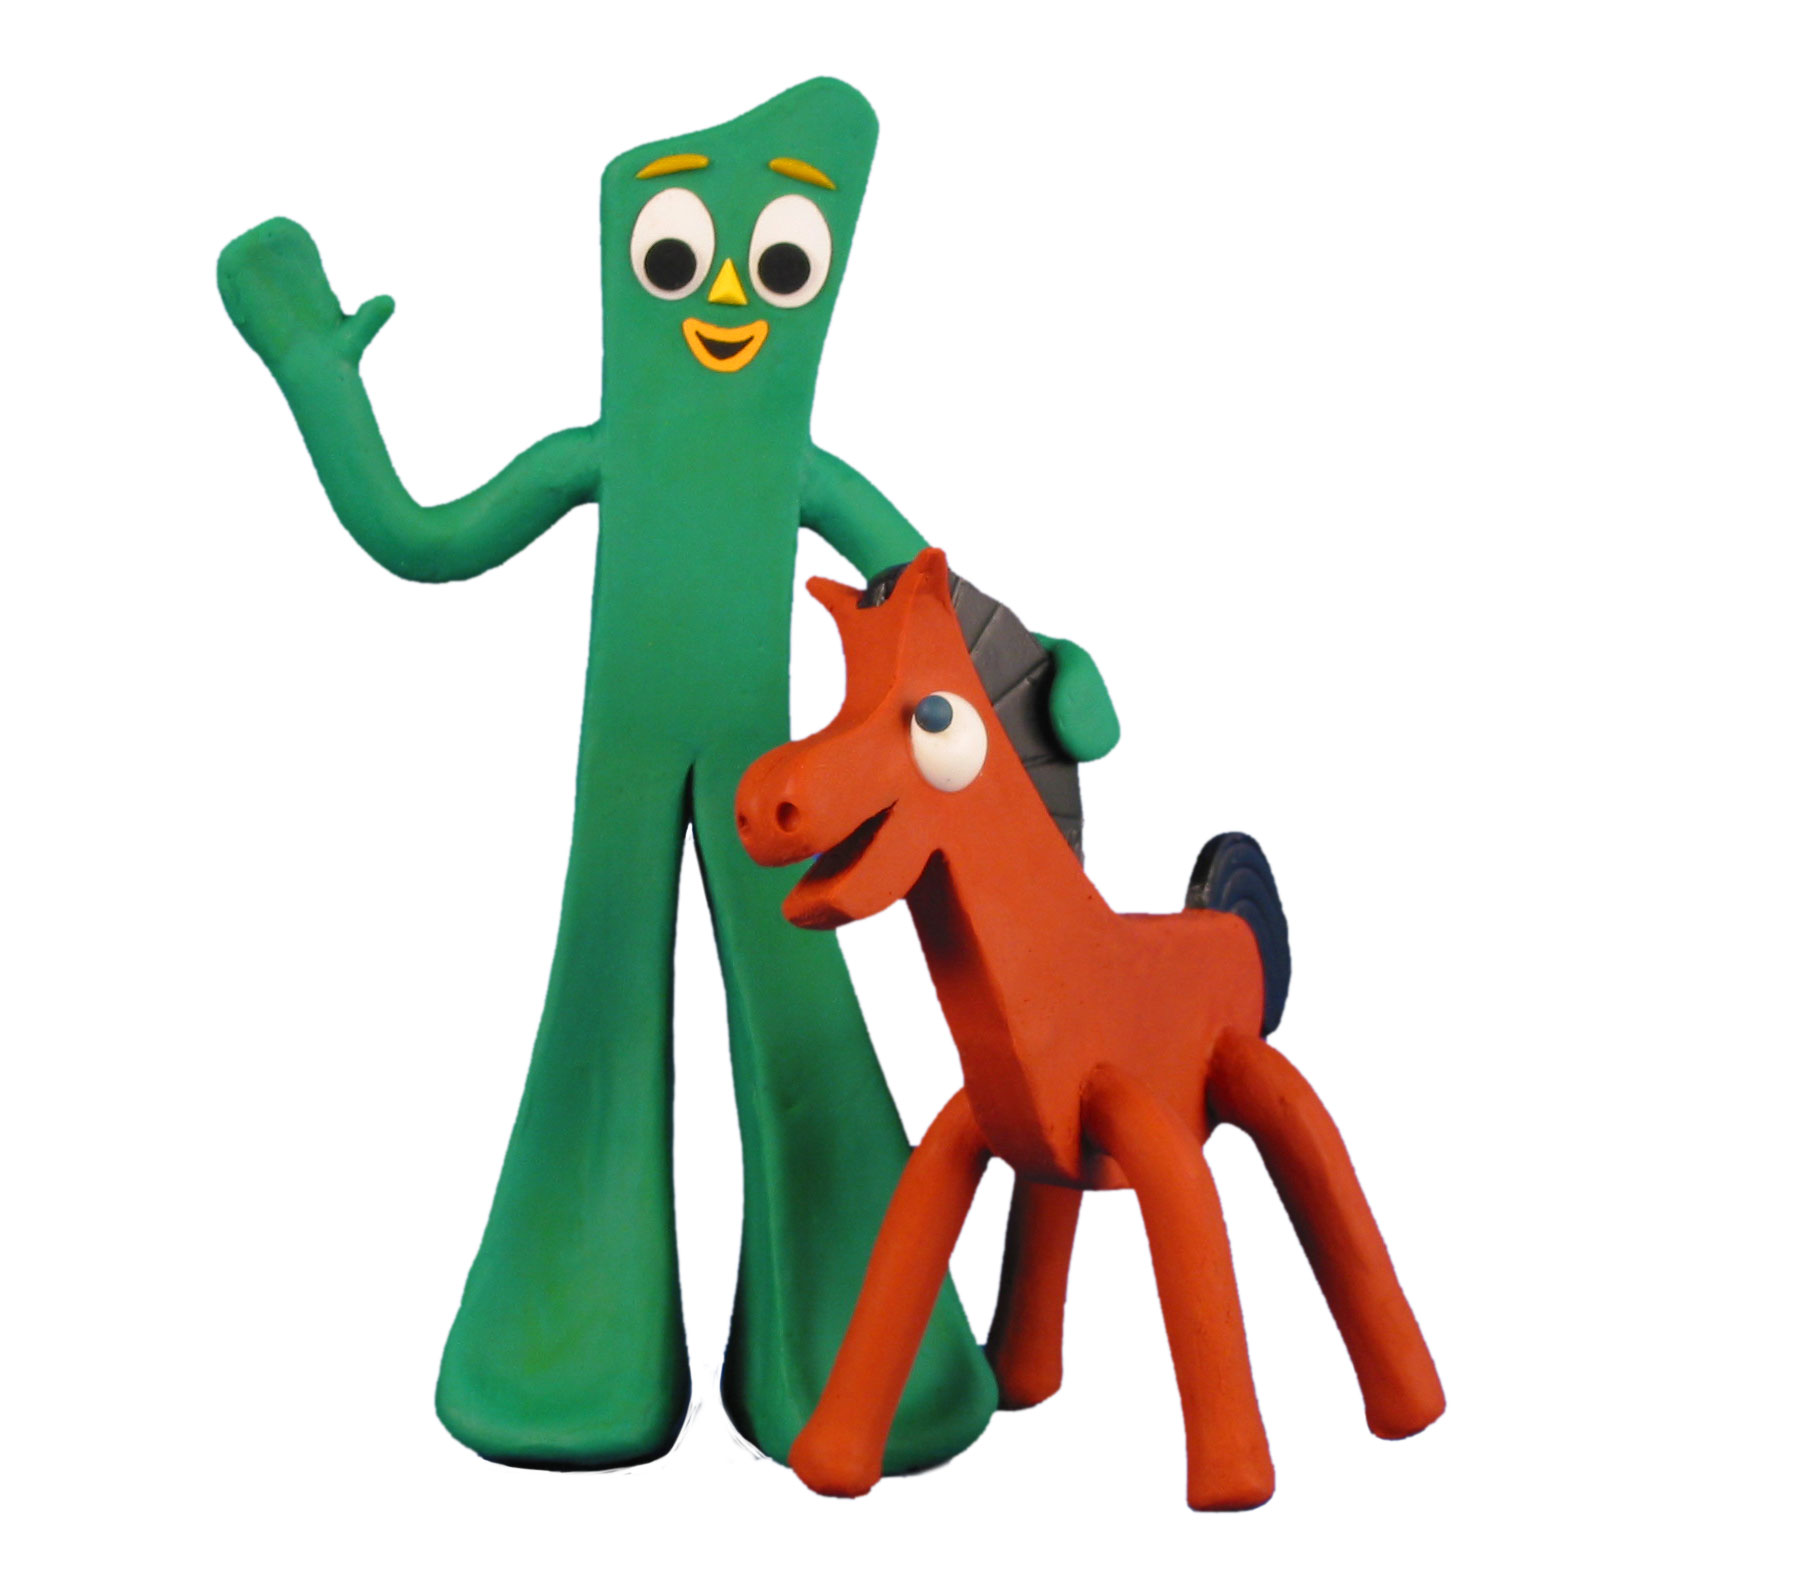 Cartoon Characters From The 70 S : Sic transit gumby william the coroner s forensic files